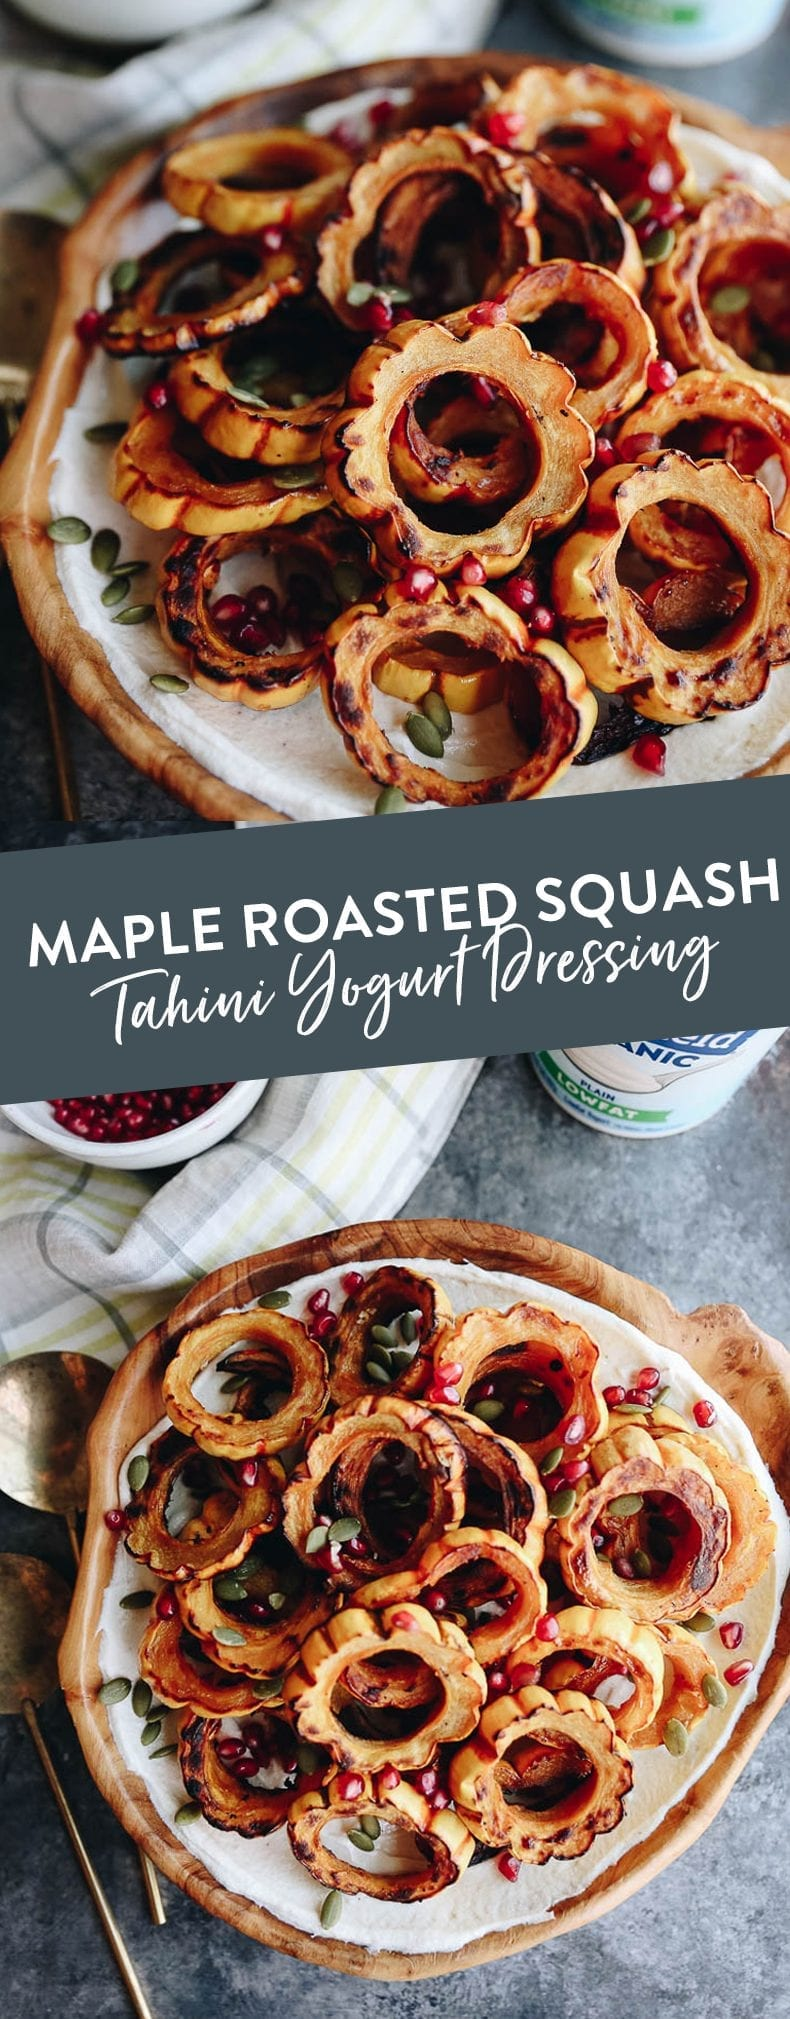 This Maple Roasted Squash with Tahini Yogurt Dressing makes a perfect weeknight dinner or Thanksgiving side dish. The squash caramelizes and is topped my a thick and creamy tahini yogurt dressing topped with pepitas and pomegranate seeds. You'll be going back for seconds! #thanksgiving #thanksgivingsides #glutenfree